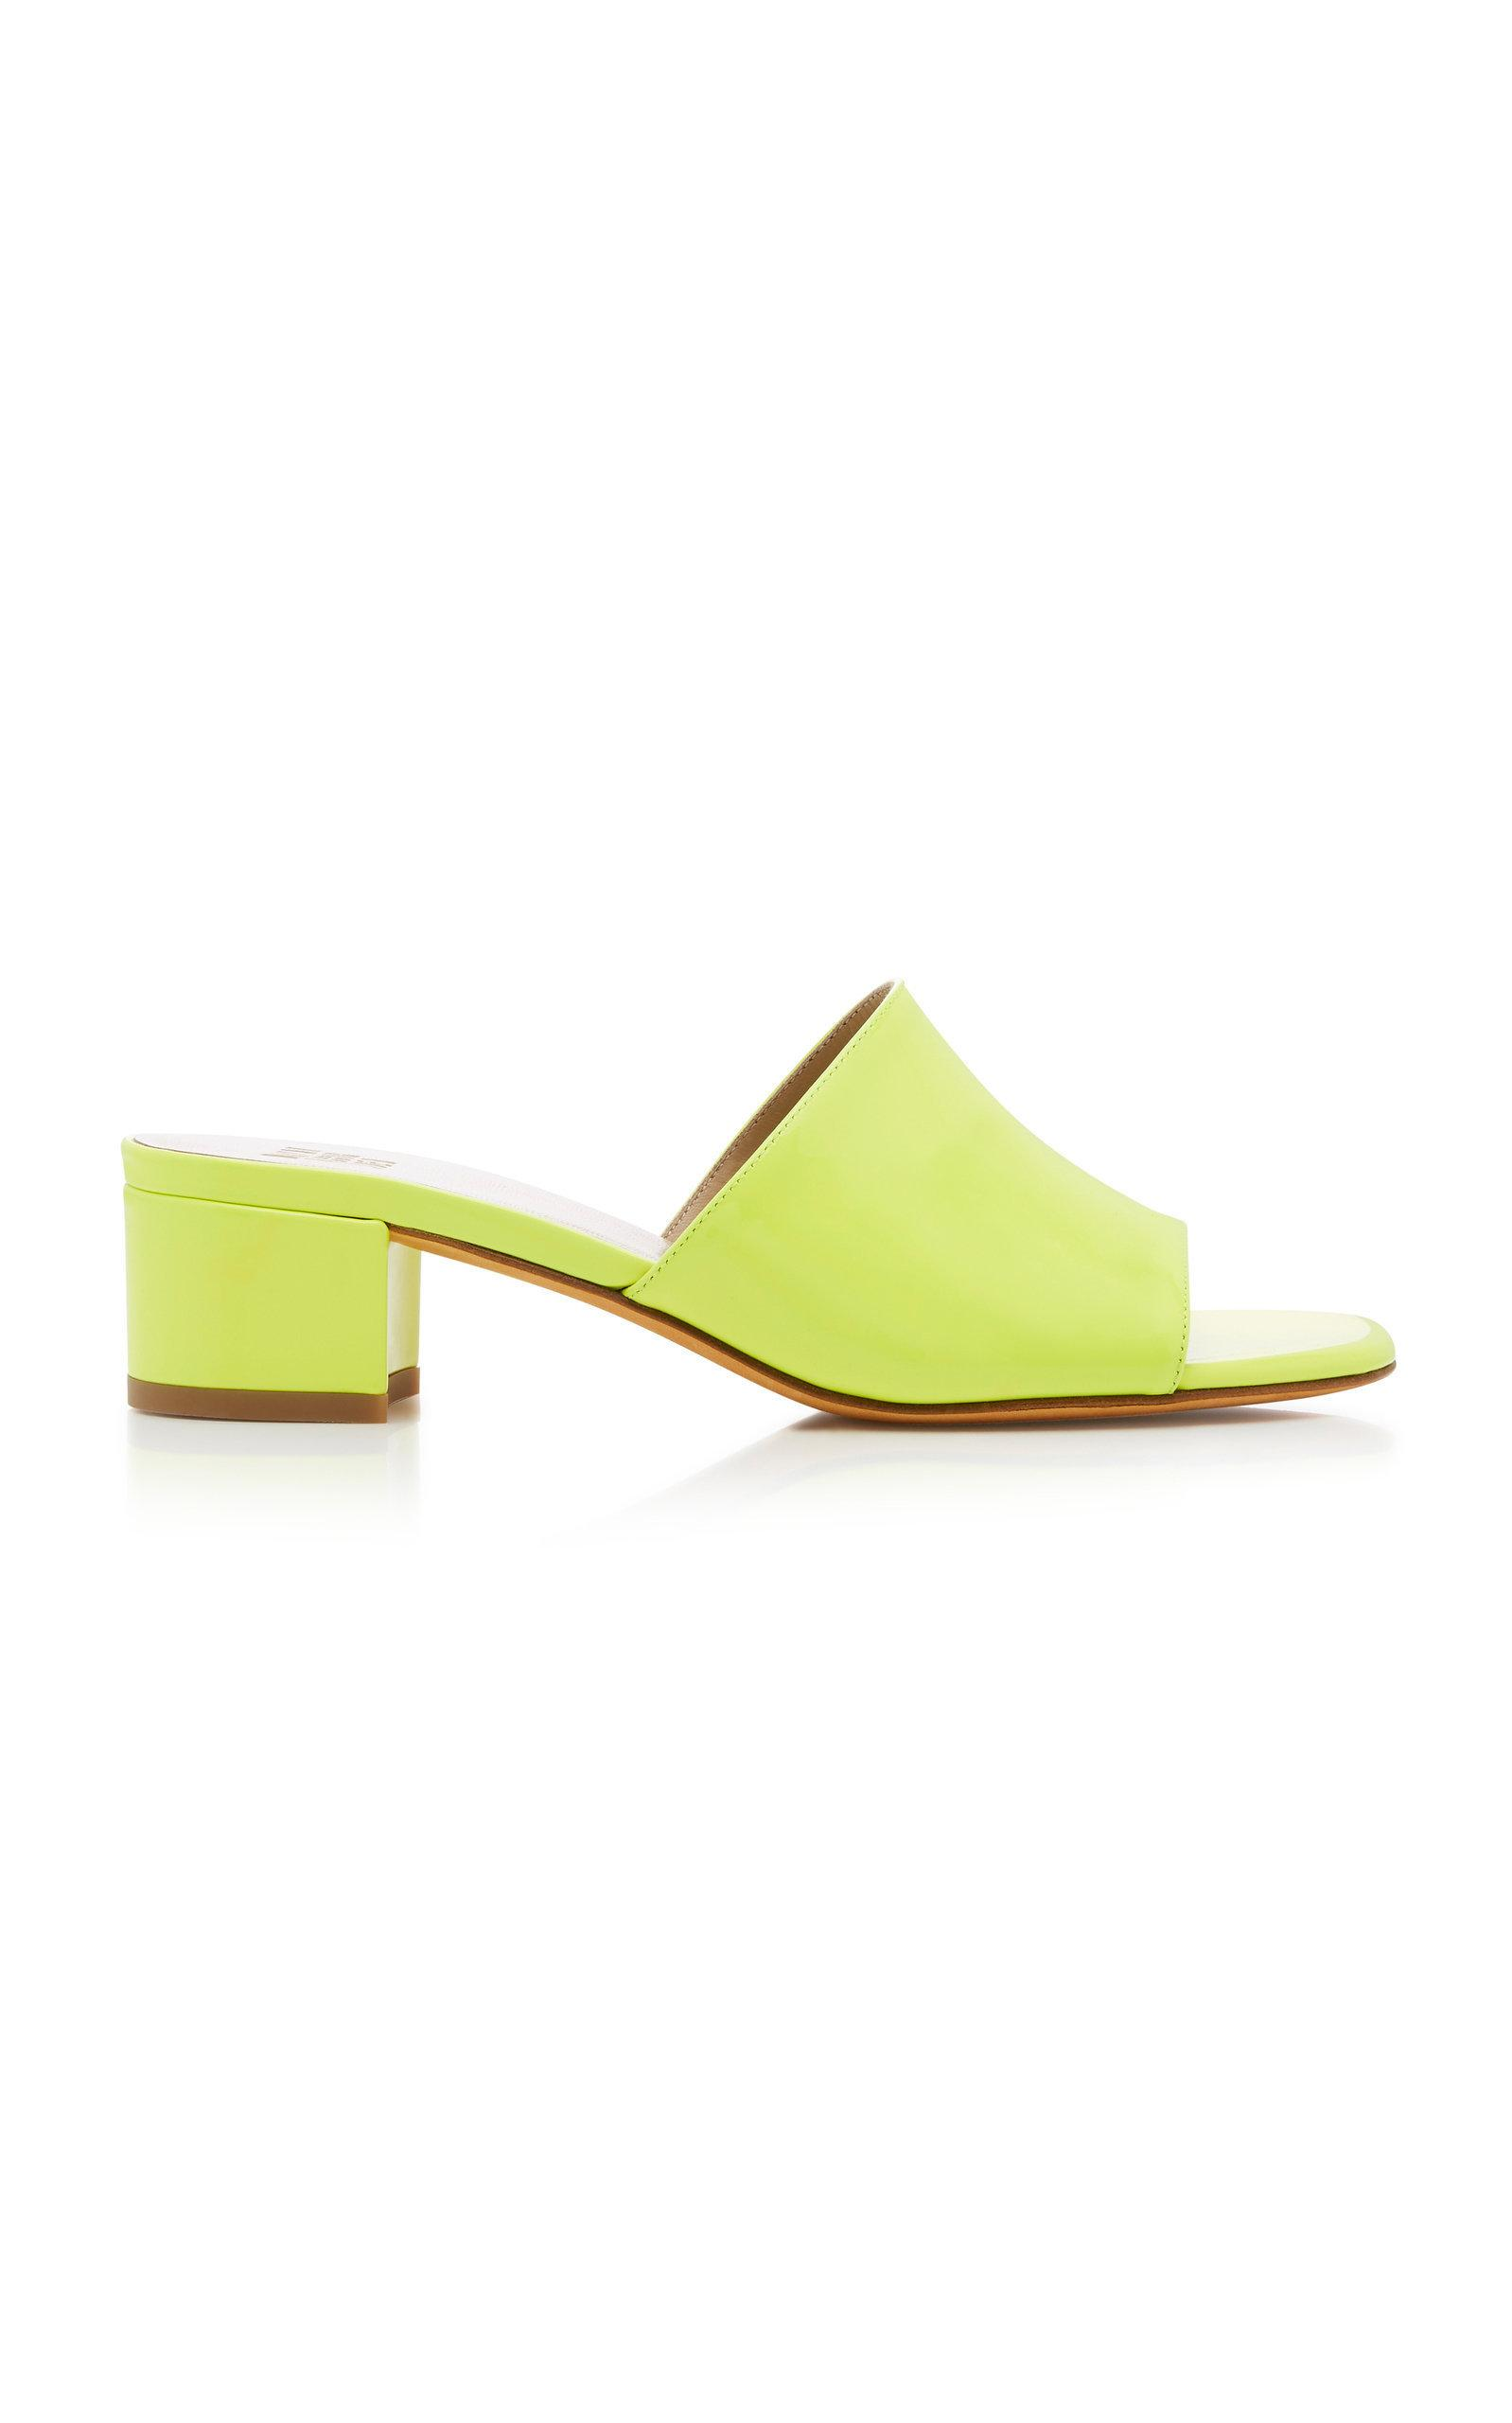 8b5a2b2eb32a Maryam Nassir Zadeh Sophie Patent Leather Slides In Yellow